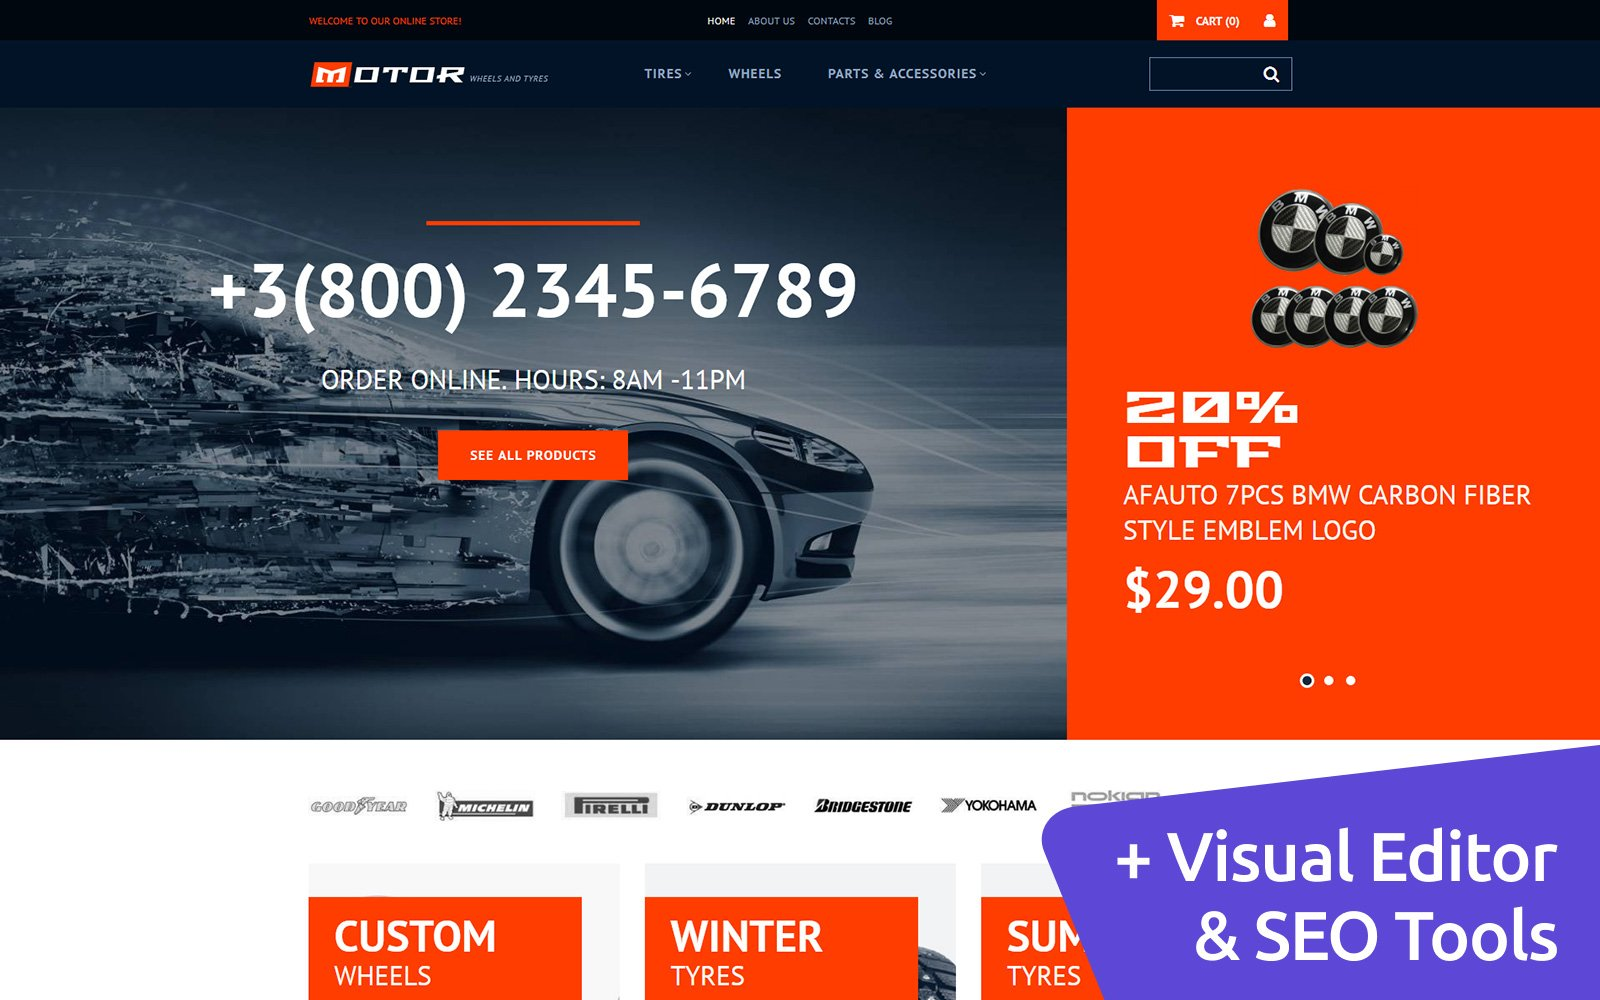 Motor Wheels & Tires MotoCMS Ecommerce Template